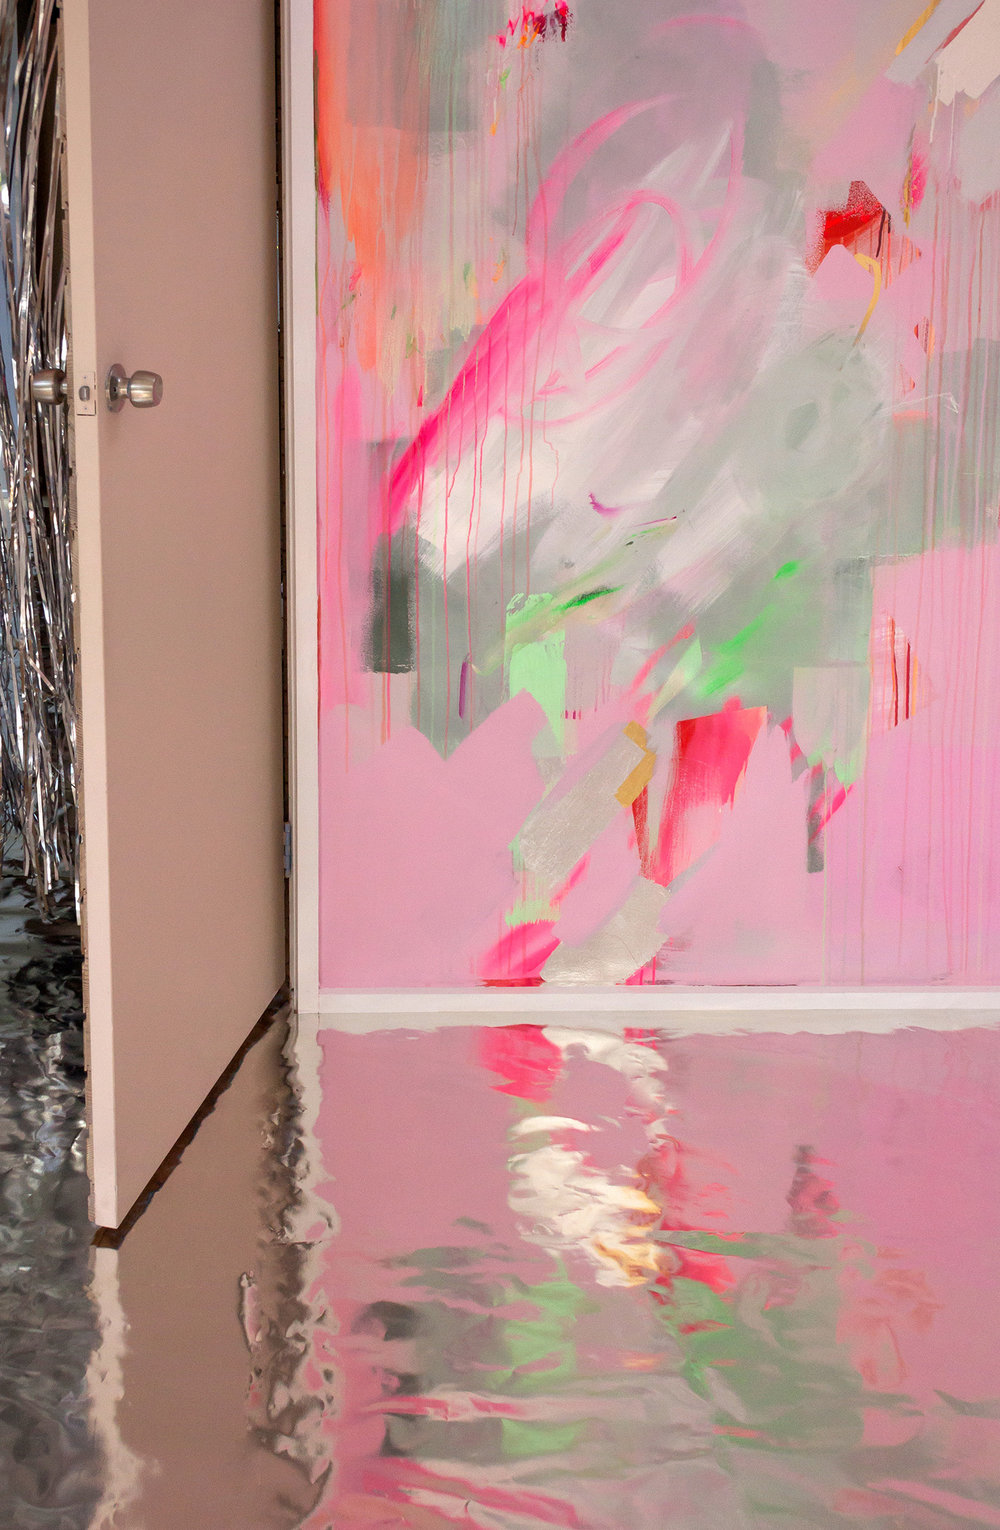 Vibrant abstract mural in pink, green and pastel colours, the energetic brushstrokes resemble a large butterfly A silver metallic curtain flies out from the doorway and silver metallic leaf floor reflects the butterfly.